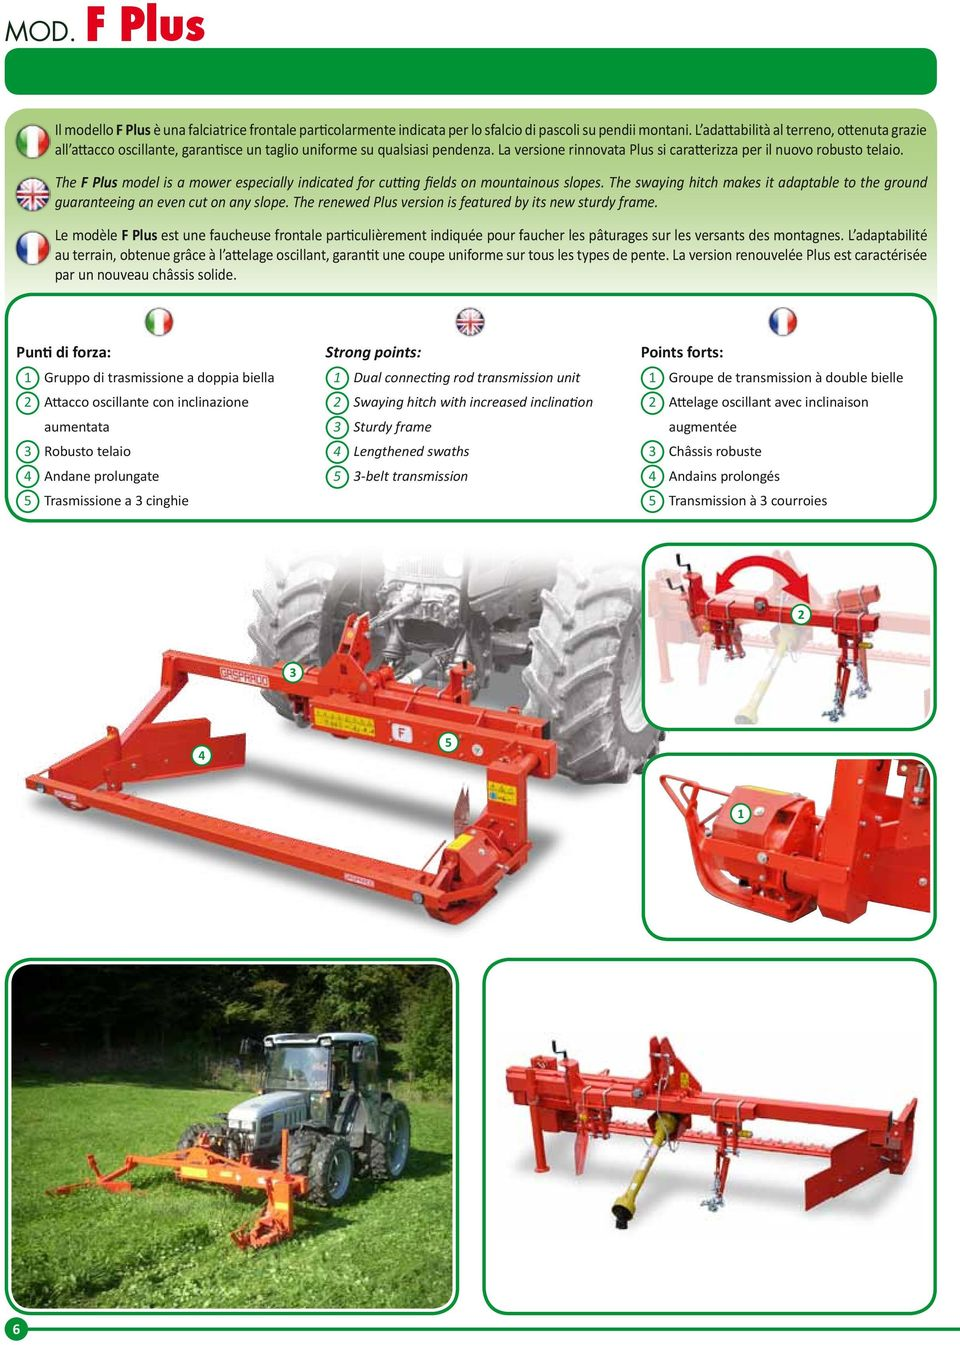 The F Plus model is a mower especially indicated for cutting fields on mountainous slopes. The swaying hitch makes it adaptable to the ground guaranteeing an even cut on any slope.